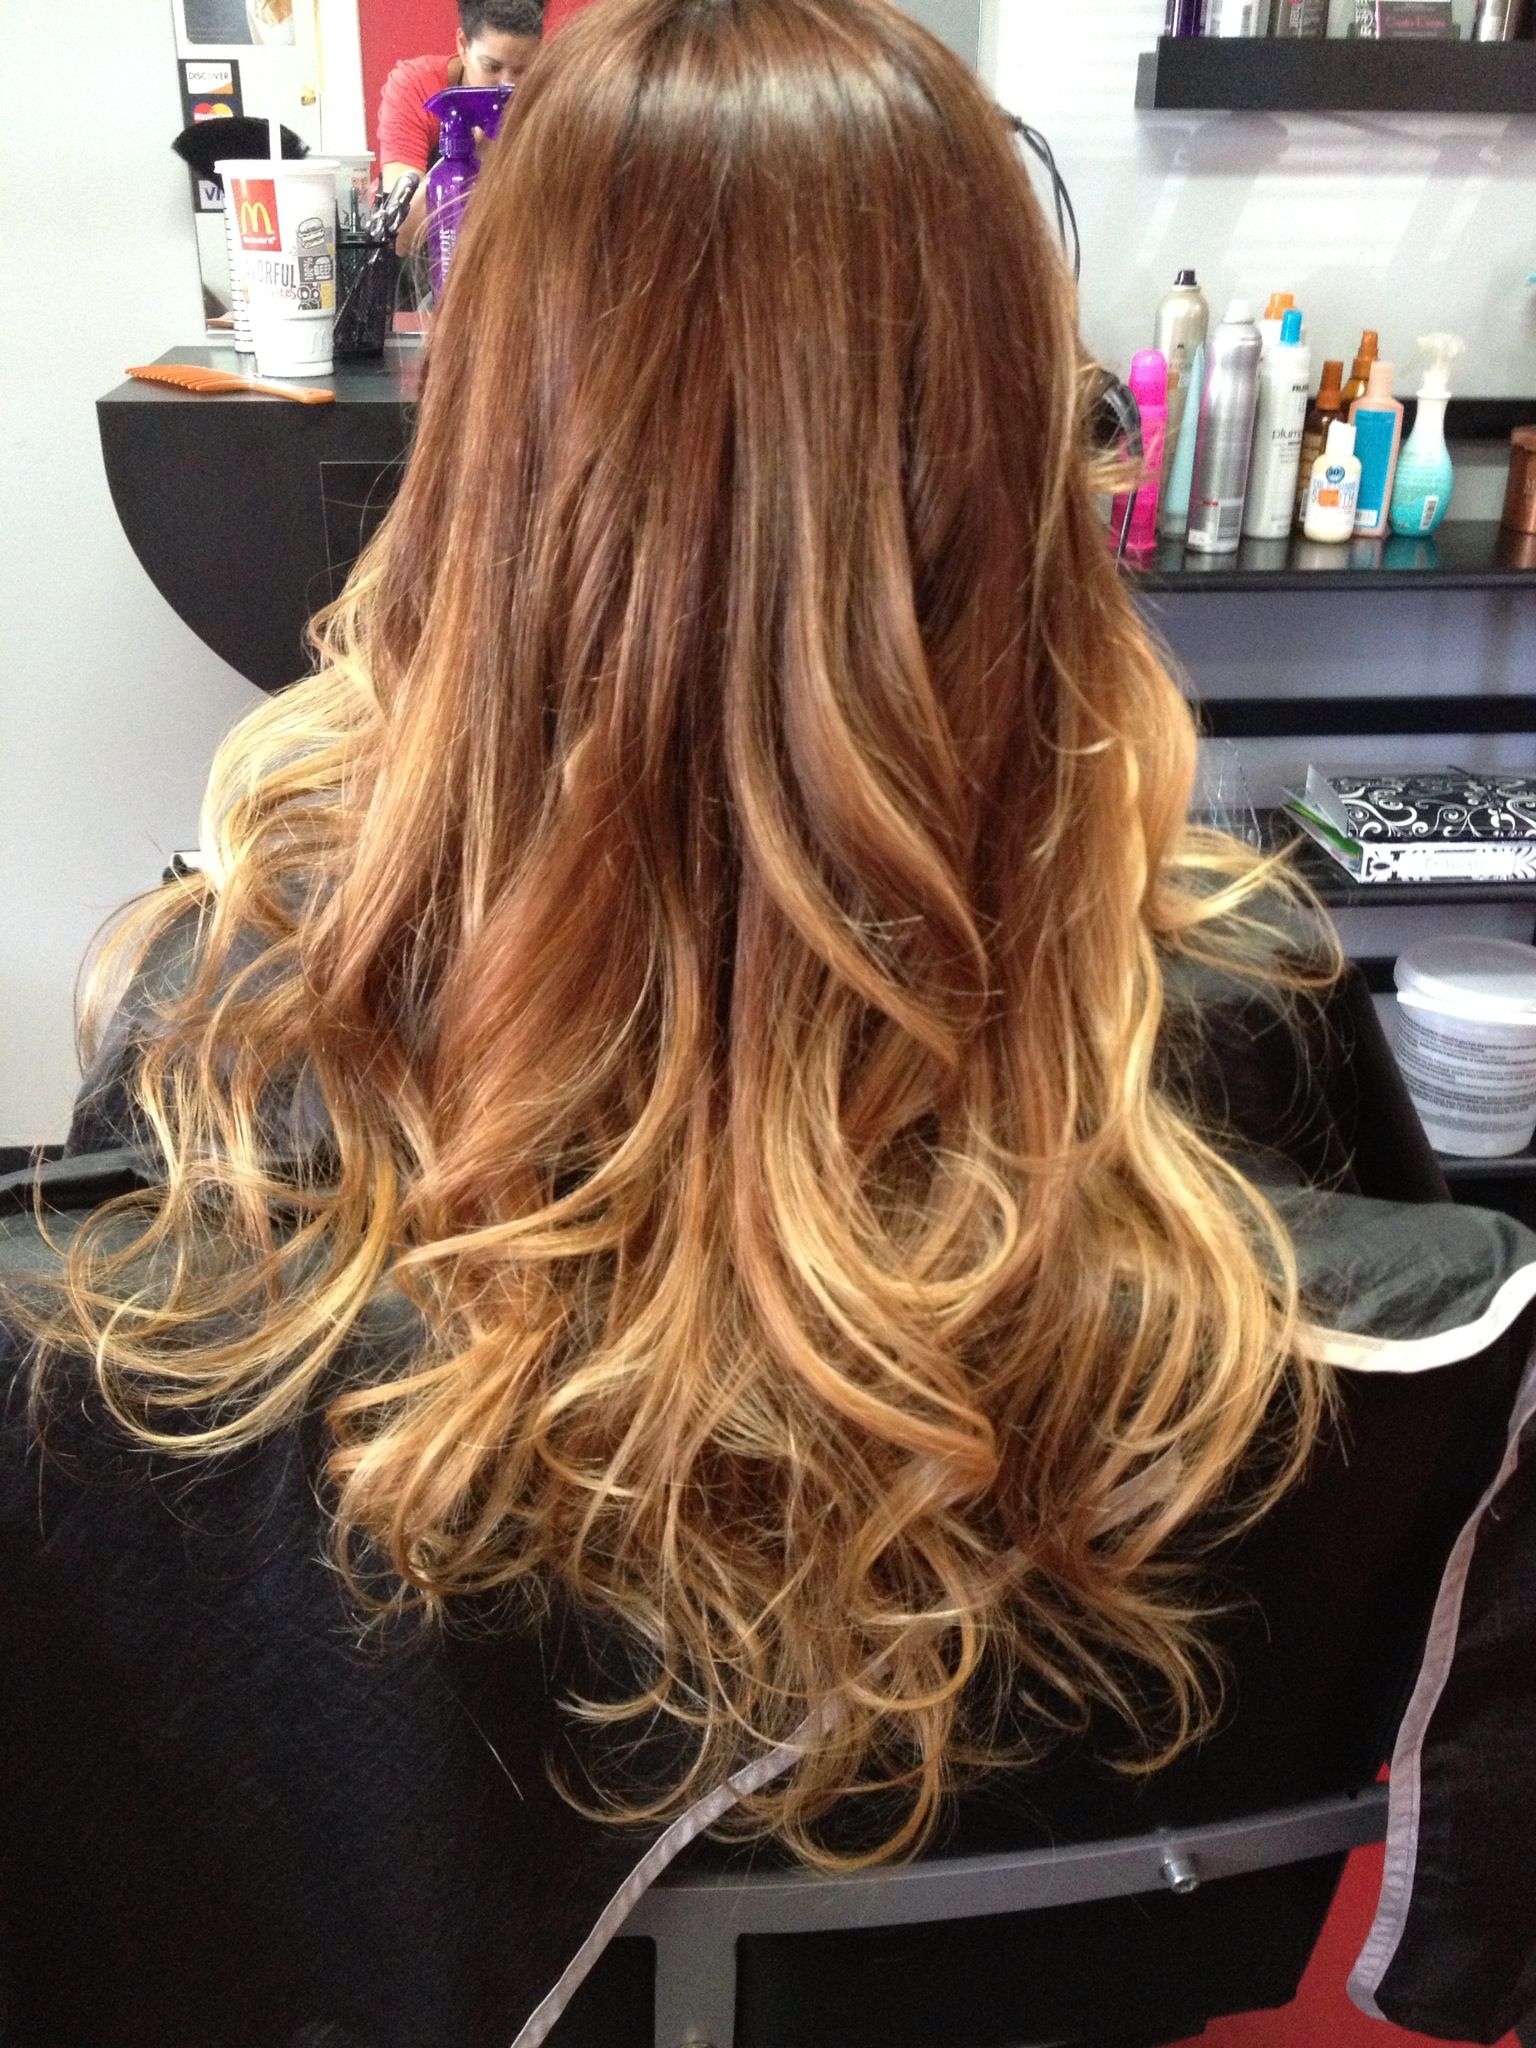 Lily aldridge ombre hair hair colors ideas of ombre hair color brown to blonde - Ombre braun blond ...